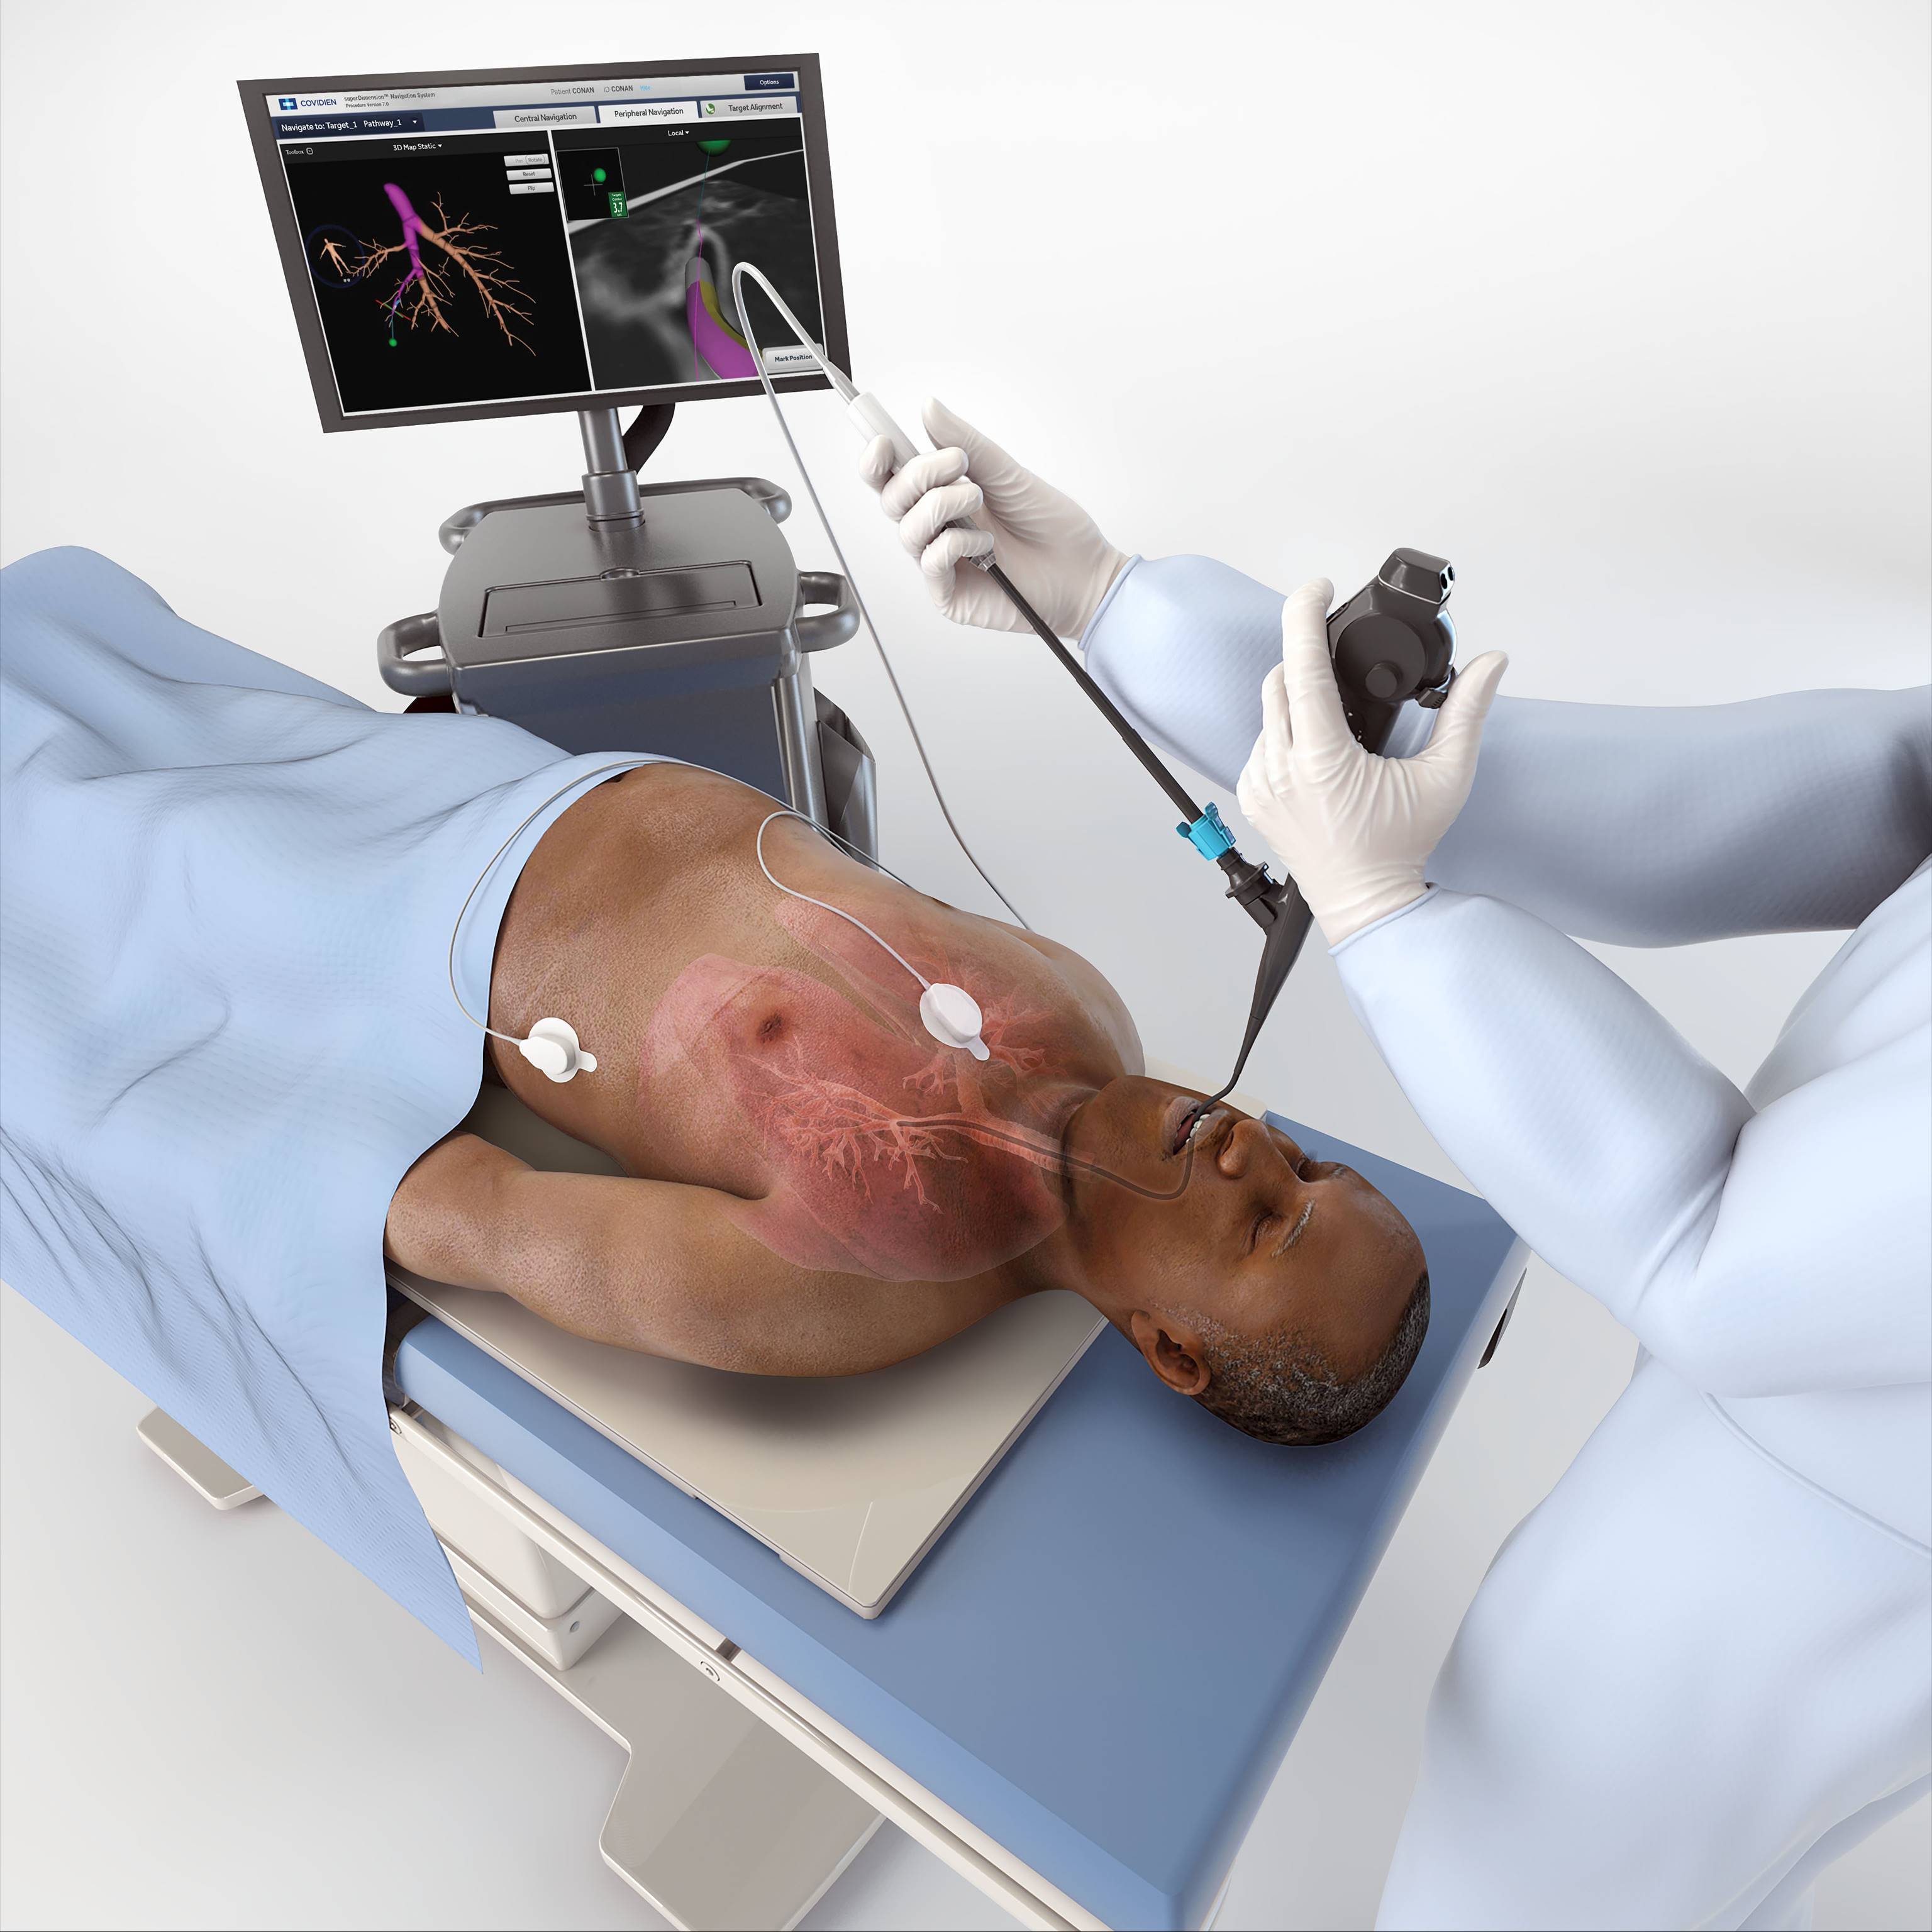 Real-World Data on Medtronic's Lung Cancer Device Is